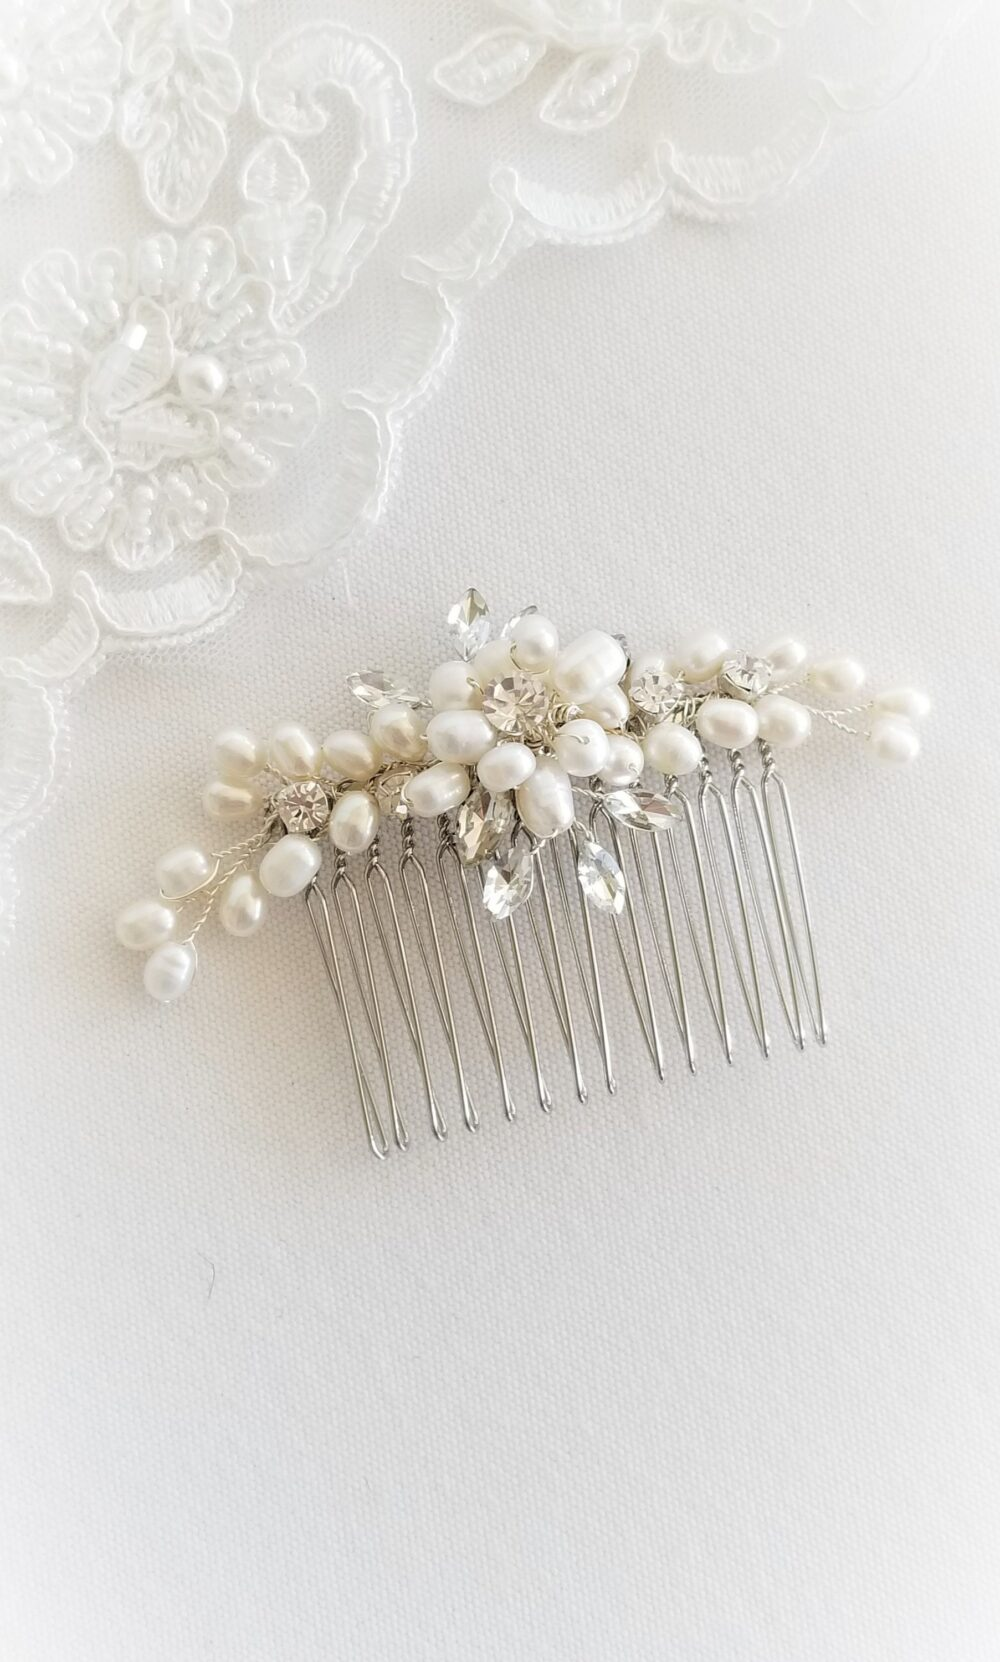 Freshwater Pearl Wedding Hair Comb, Small Crystal Bridal Comb For Bride